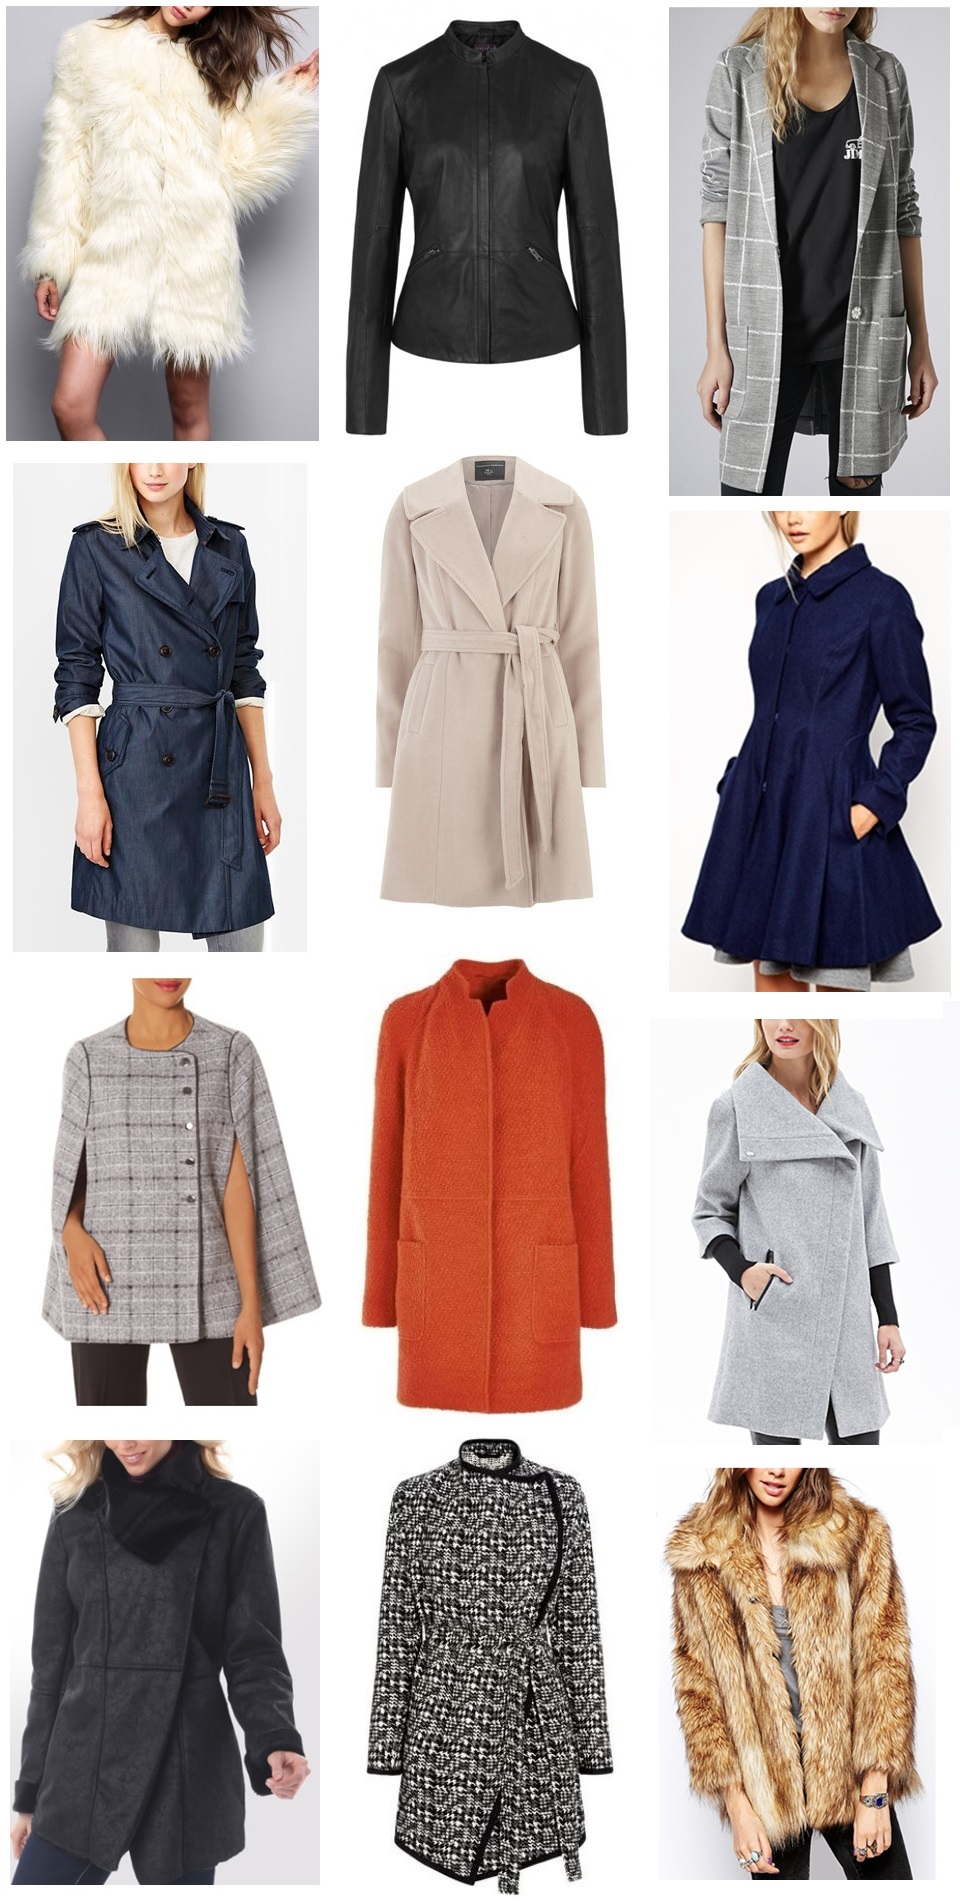 TALL OUTERWEAR SOIREE (top to bottom, left to right): YETI COAT - TTYA for Long Tall Sally/SOFT LEATHER JACKET - Long Tall Sally/TALL GRID CHECK JACKET - TopShop/CLASSIC INDIGO TRENCH - Gap/TALL BLUSH FIT AND FLARE COAT - Dorothy Perkins/TALL DOLLY SKATER COAT - ASOS/SCANDAL COLLECTION PLAID CAPE - The Limited/ORANGE BOUCLE COAT - Next/HEATHER DOUBLE-SLEEVE COCOON COAT - Forever 21/Madison Coat - LEL/CHECKED BLANKET COAT - Next/TALL VINTAGE FAUX FUR COAT - ASOS/